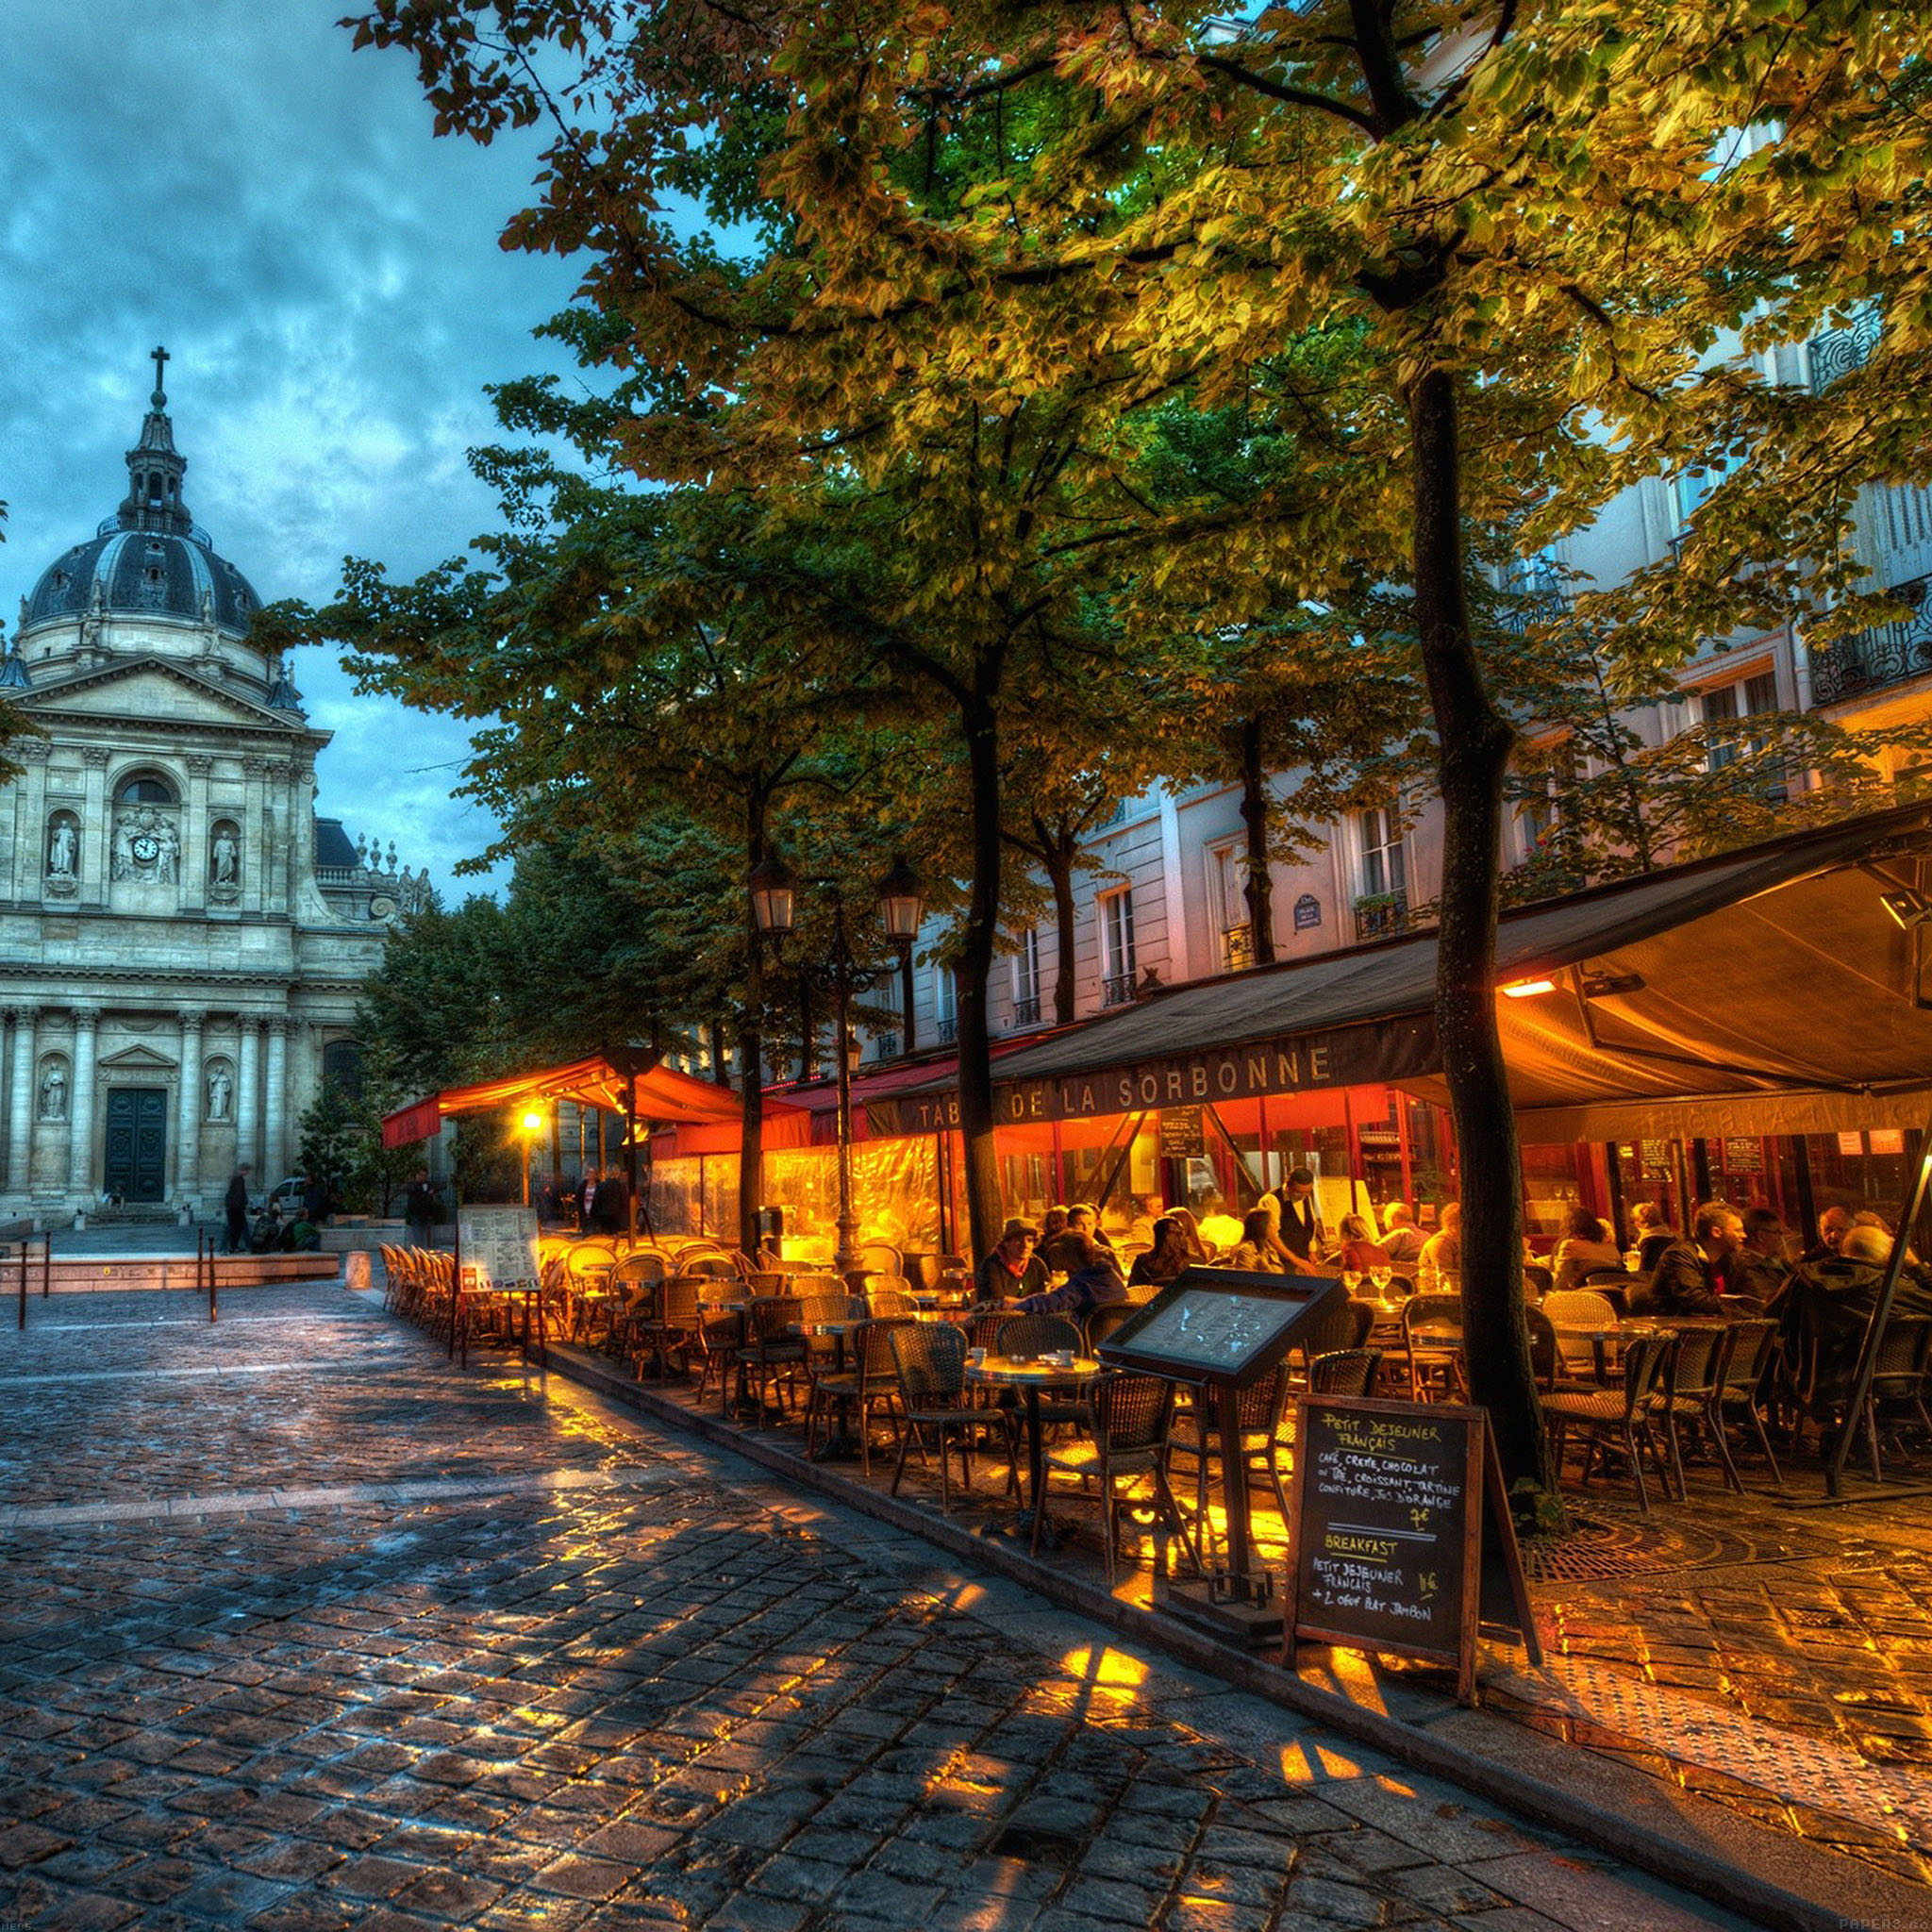 Medical Wallpaper Hd Me85 De La Sorbonne City Street Papers Co